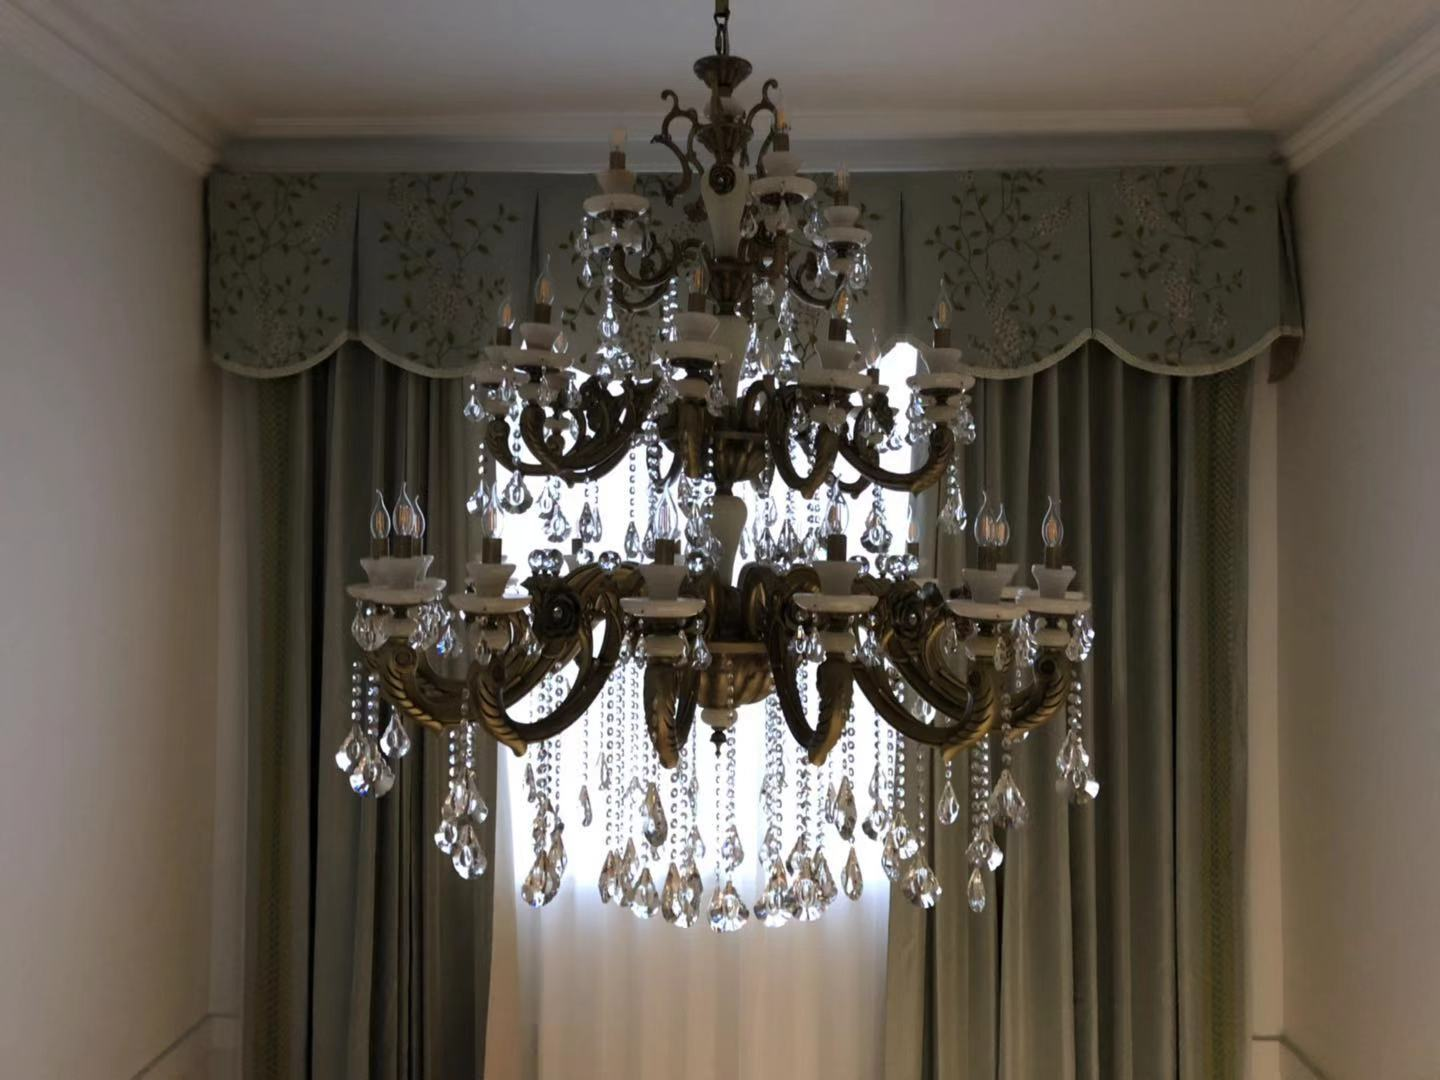 Birdcage crystal chandelier / StairCass / High ceiling / Long Chandelier / Crystal Chandelier / melbourne chandelier / K9 Crystla / Sovosiky Chandelier / 8 Arms Chandelier / 6 Arms/ arms / Candles / Crystal Chandelier Extra large / Jade and Crystal Chandelier